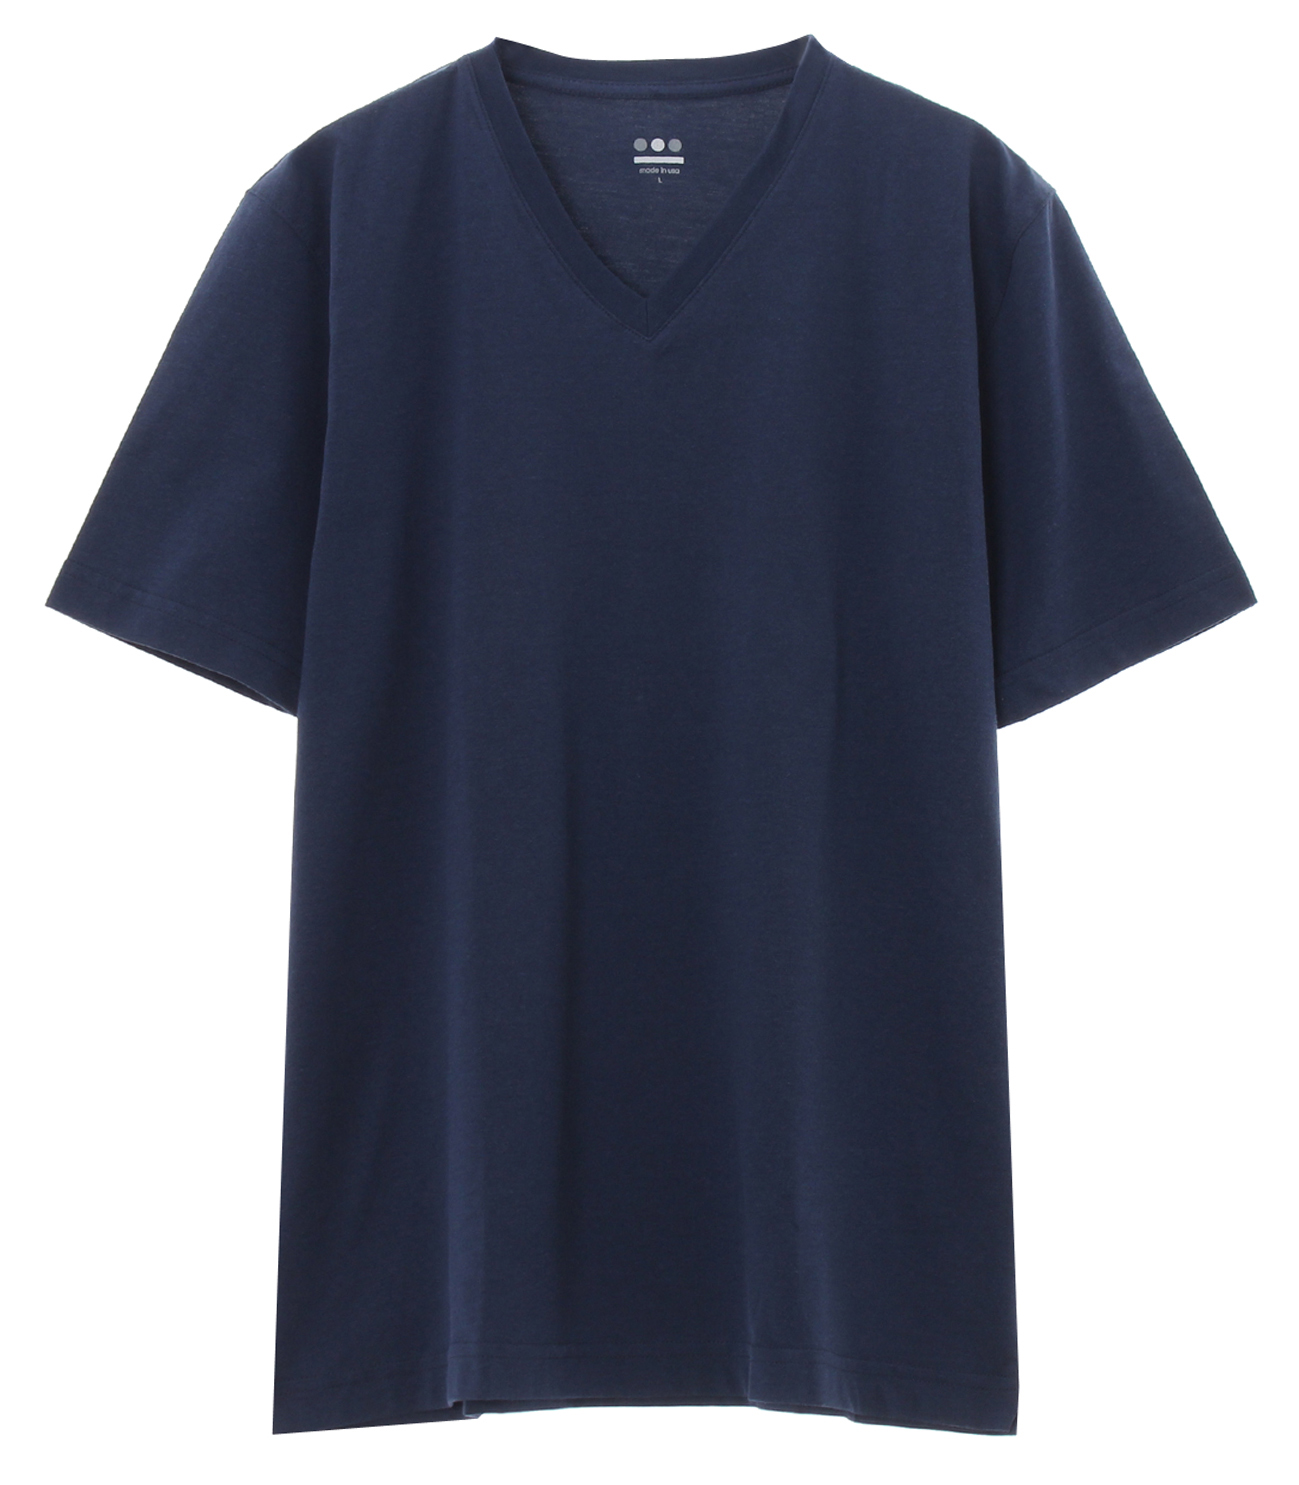 powdery cotton v-neck 詳細画像 night iris 1